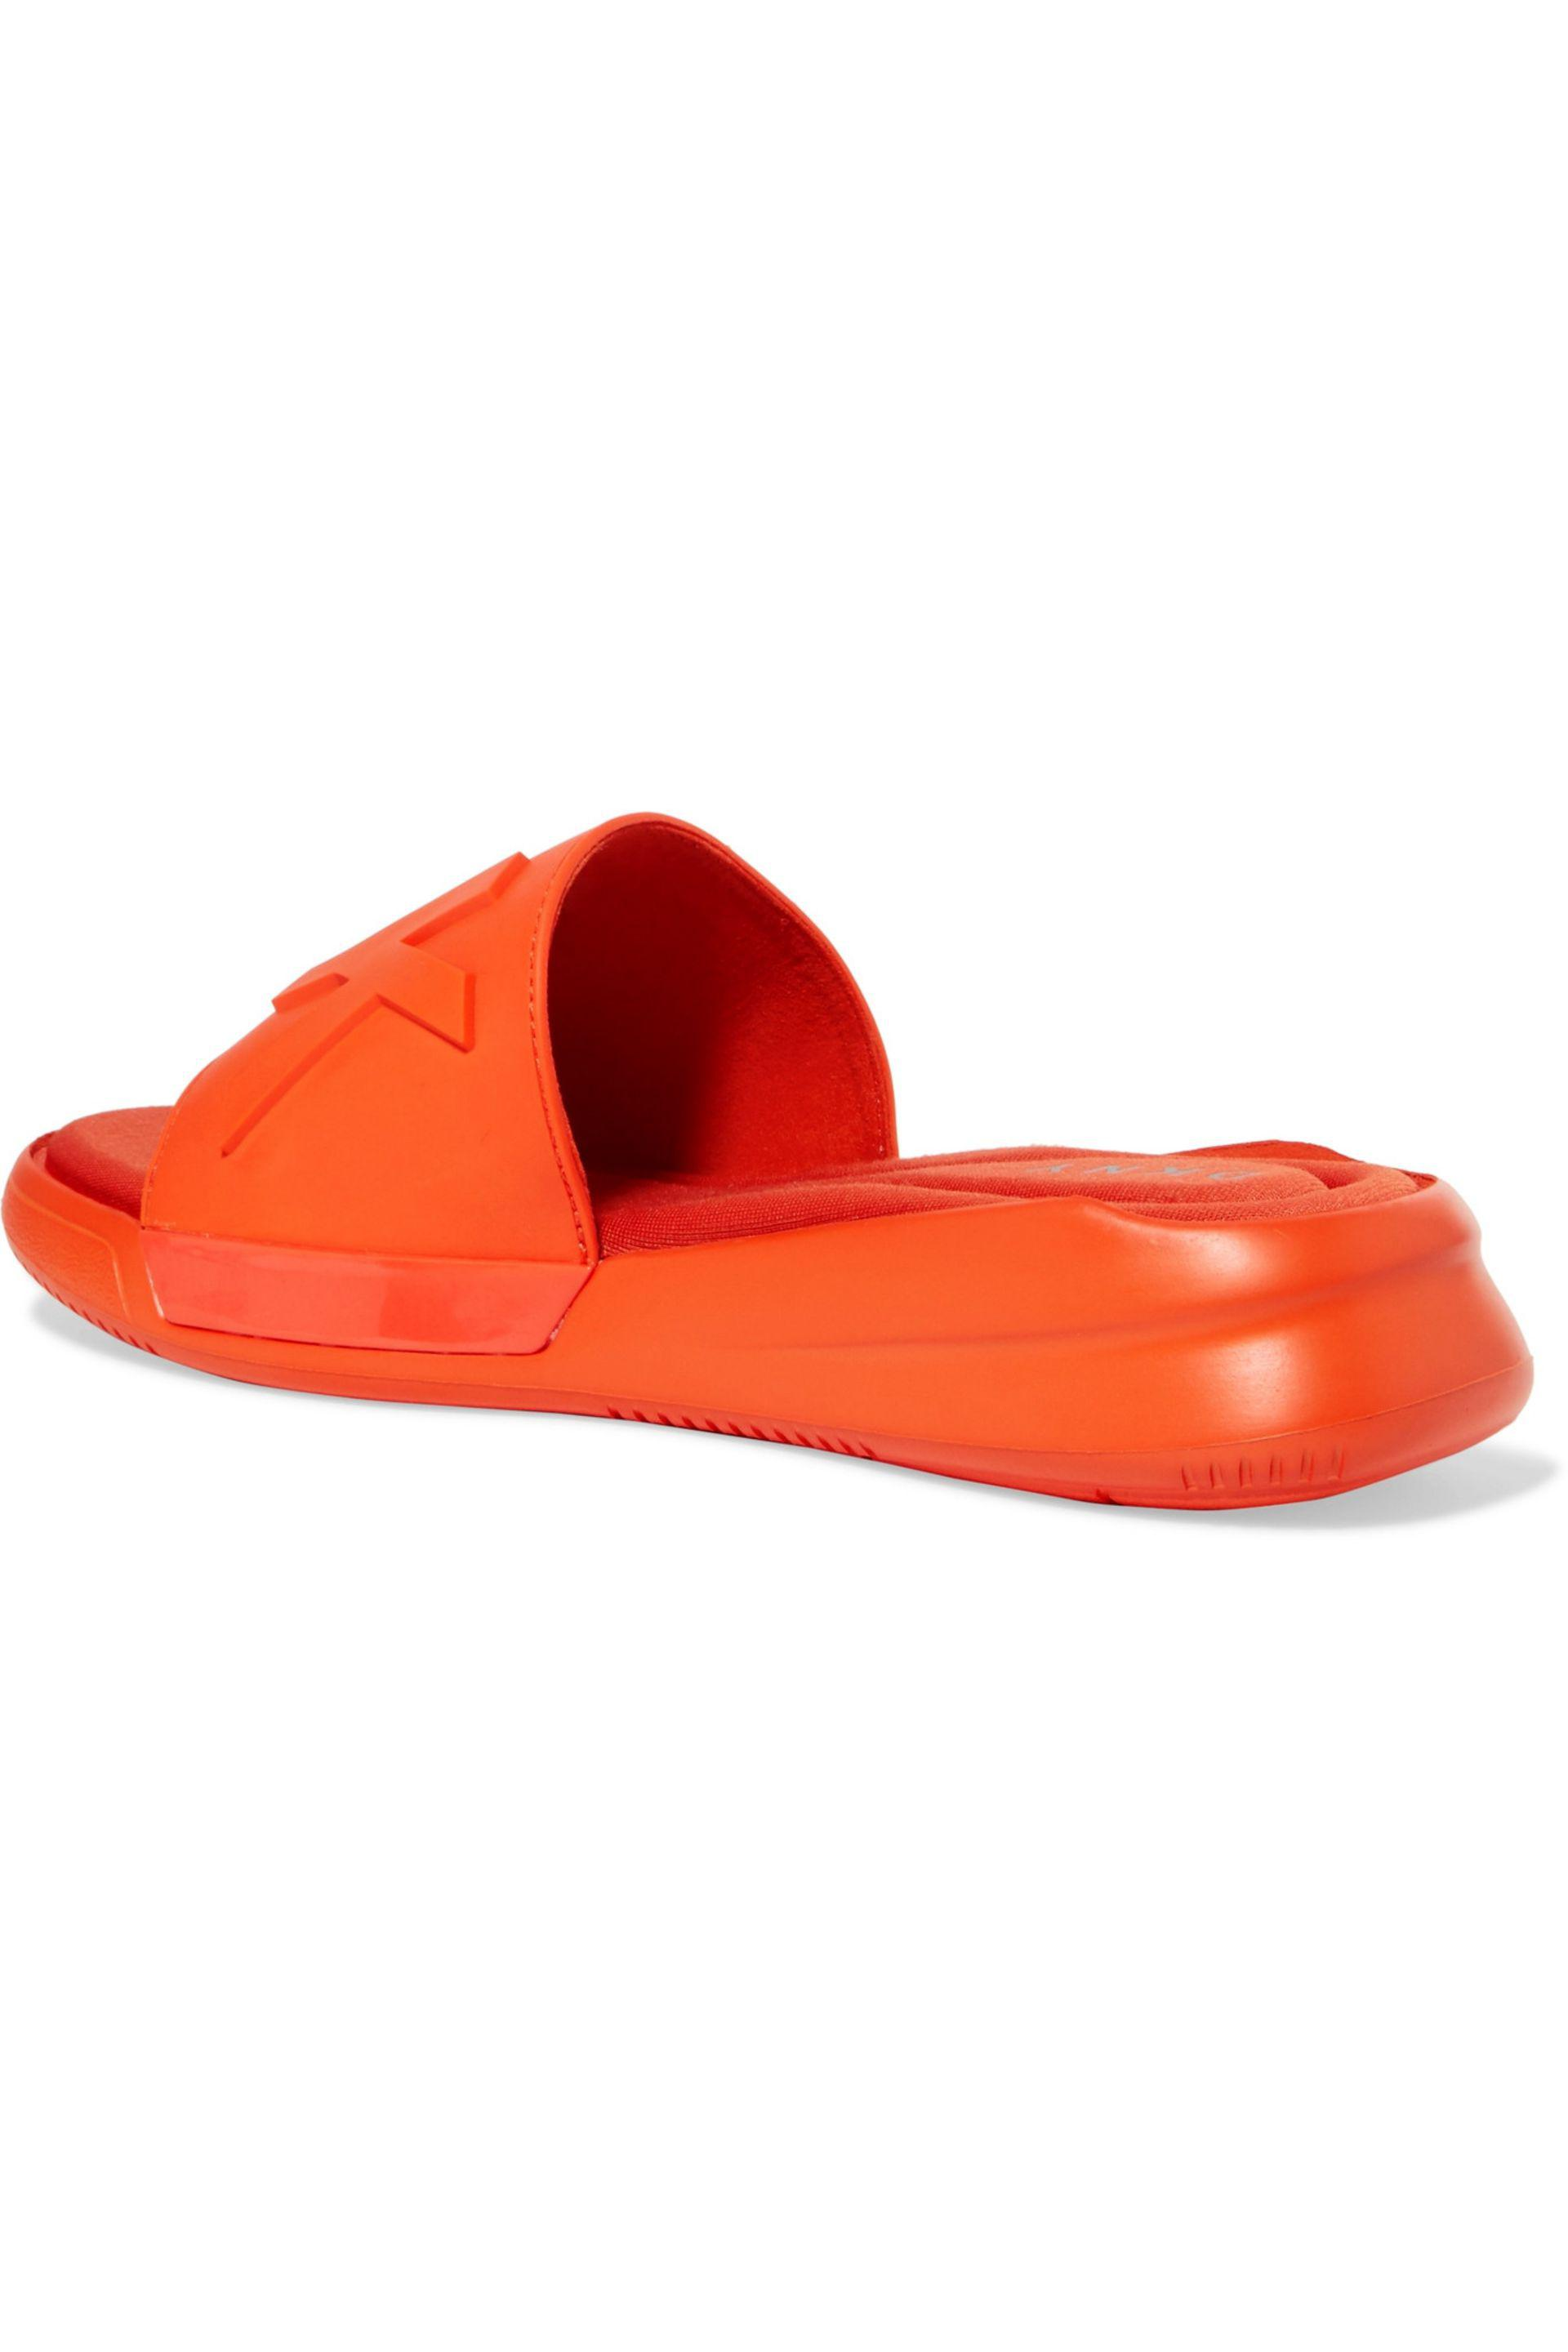 2503cb33e247a DKNY Embossed Rubber Sandals in Orange - Lyst